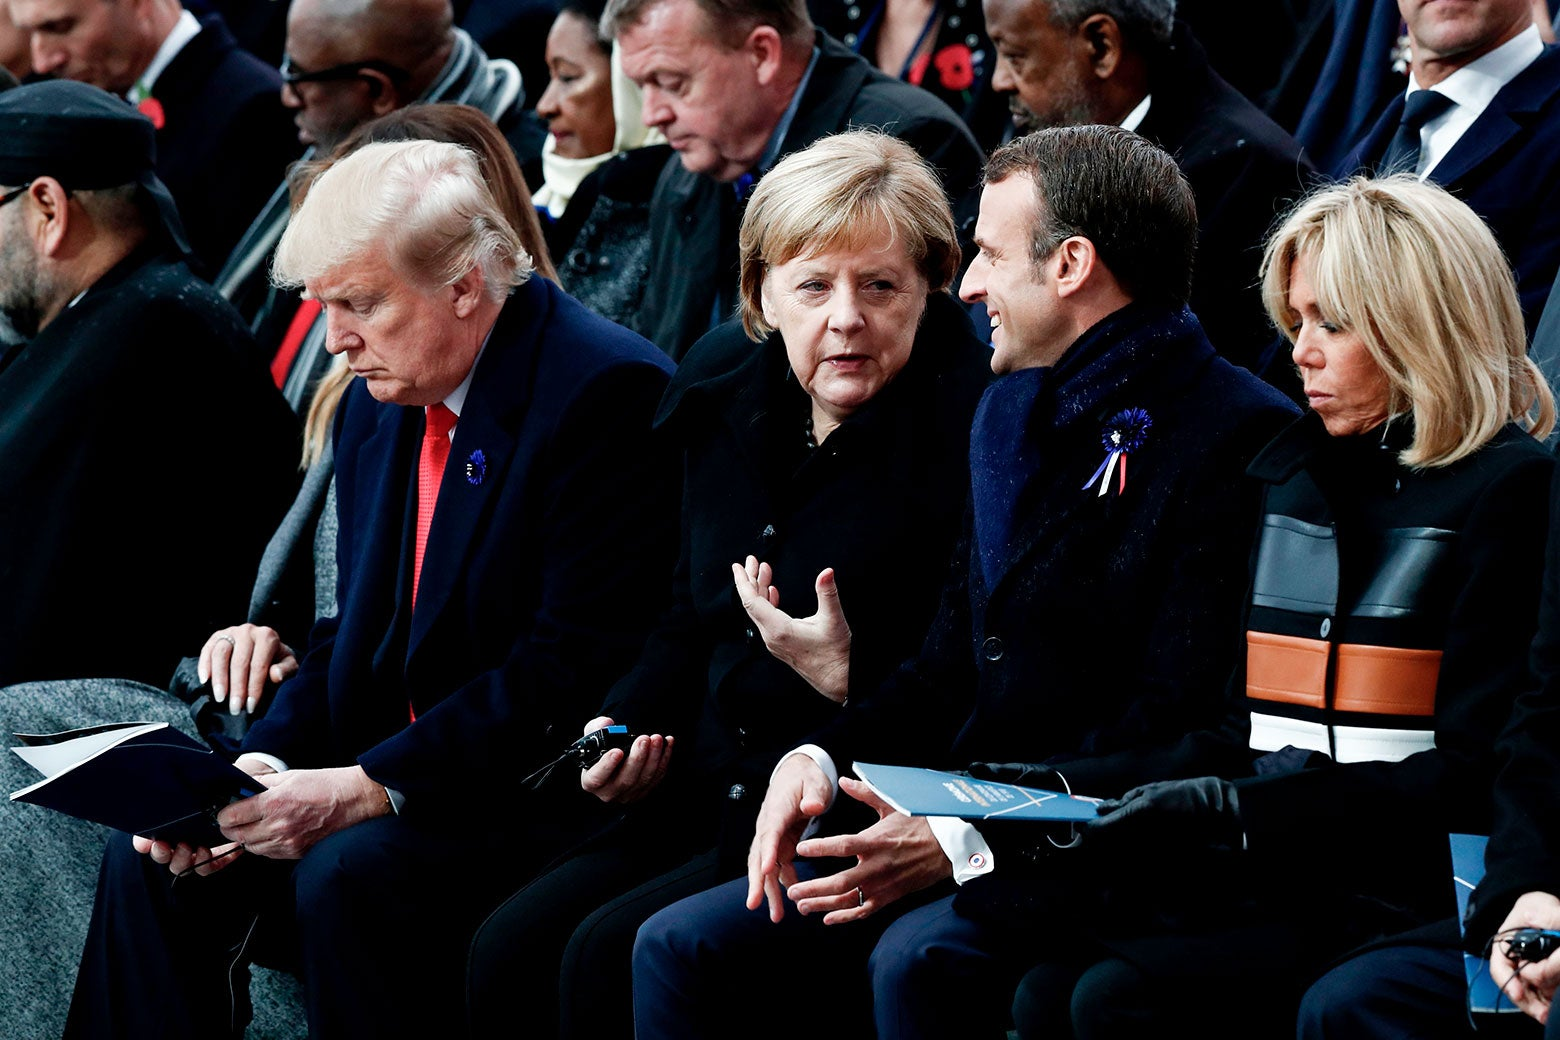 U.S. President Donald Trump, German Chancellor Angela Merkel, French President Emmanuel Macron, and his wife Brigitte Macron attend a ceremony at the Arc de Triomphe in Paris on Sunday.